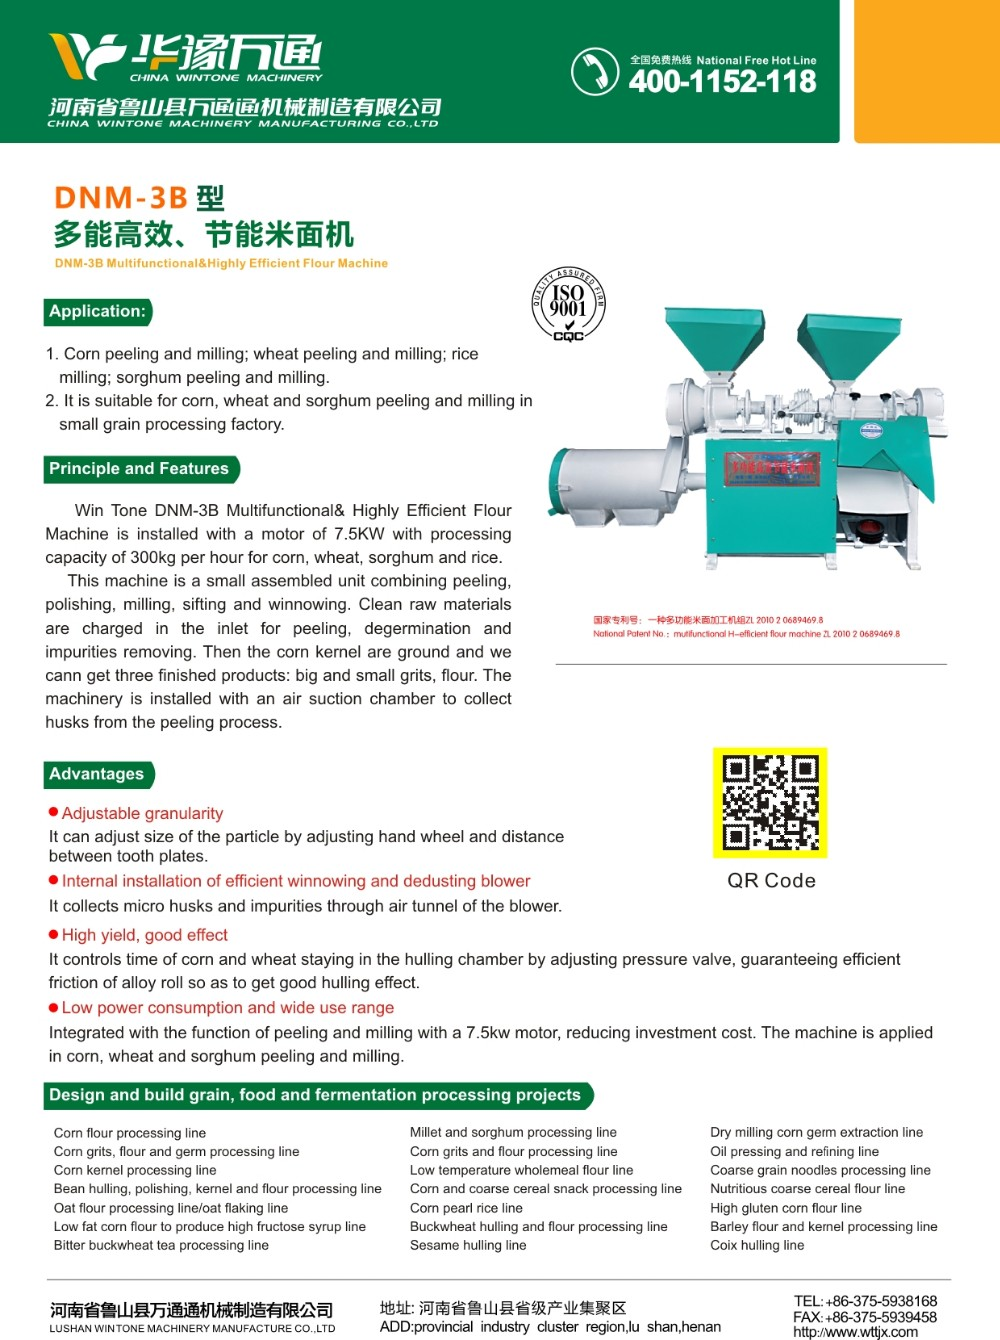 maize milling plant usage rules Maize milling plant can not only demands for maize milling plant we should abide by the operation rules to ensure about maize milling plant usage.